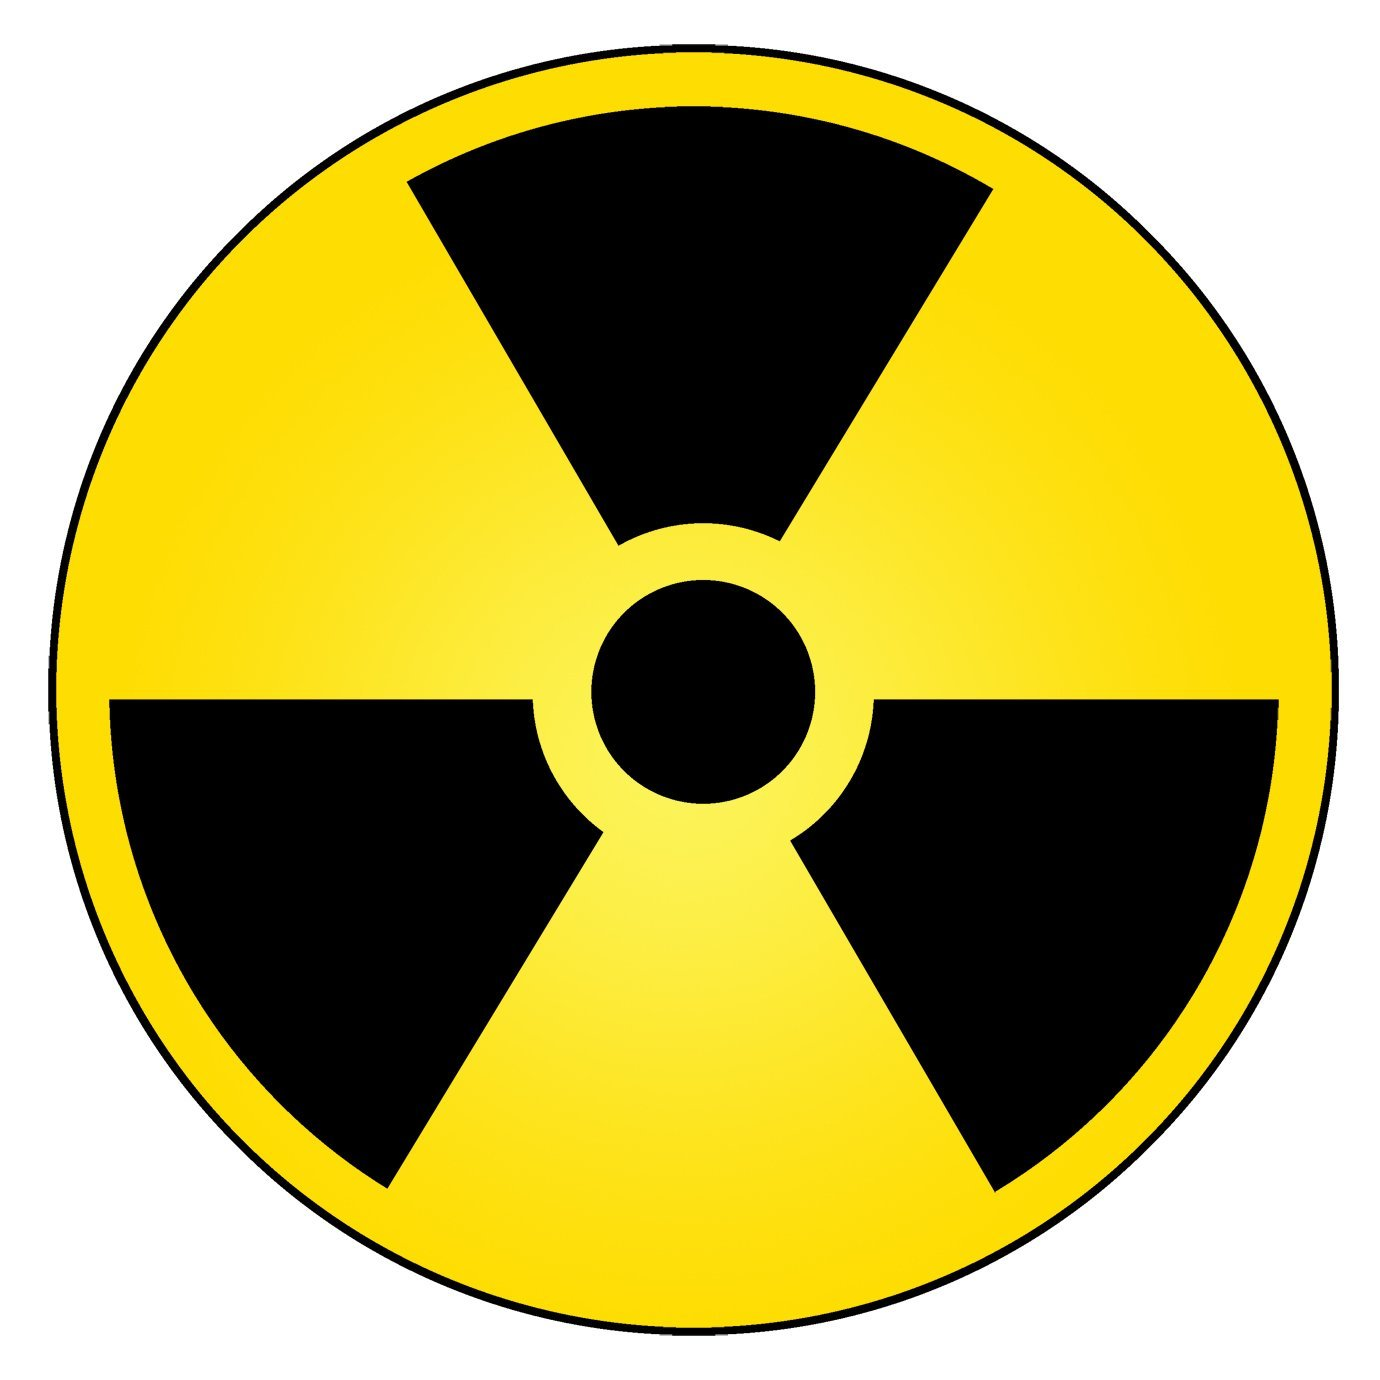 11 Radioactive Warning Sign Free Cliparts That You Can Download To You